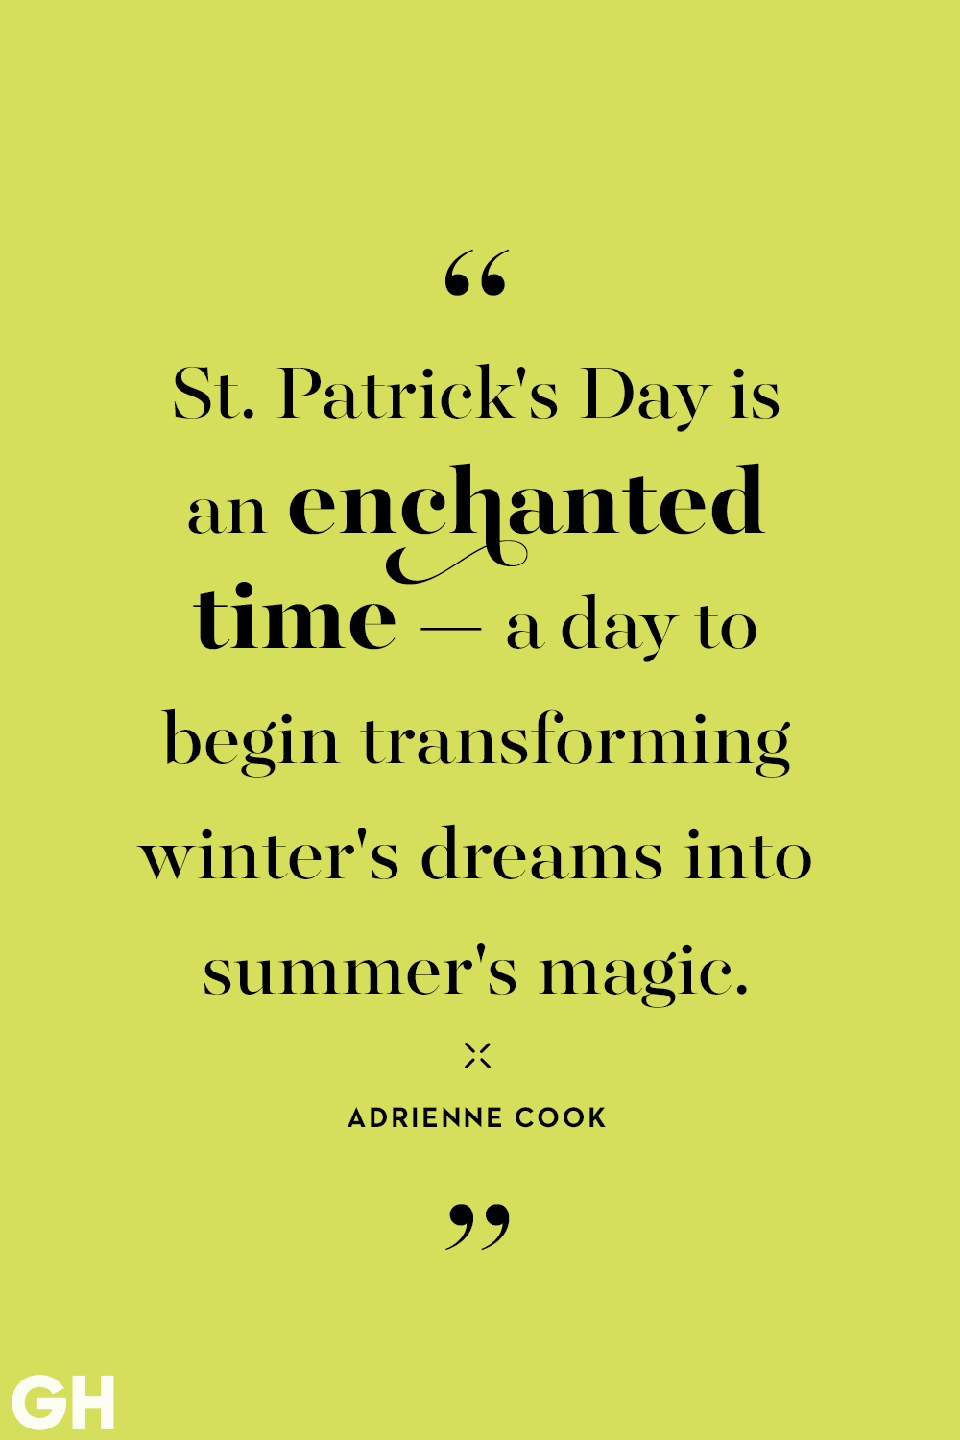 <p>St. Patrick's Day is an enchanted time — a day to begin transforming winter's dreams into summer's magic. </p>